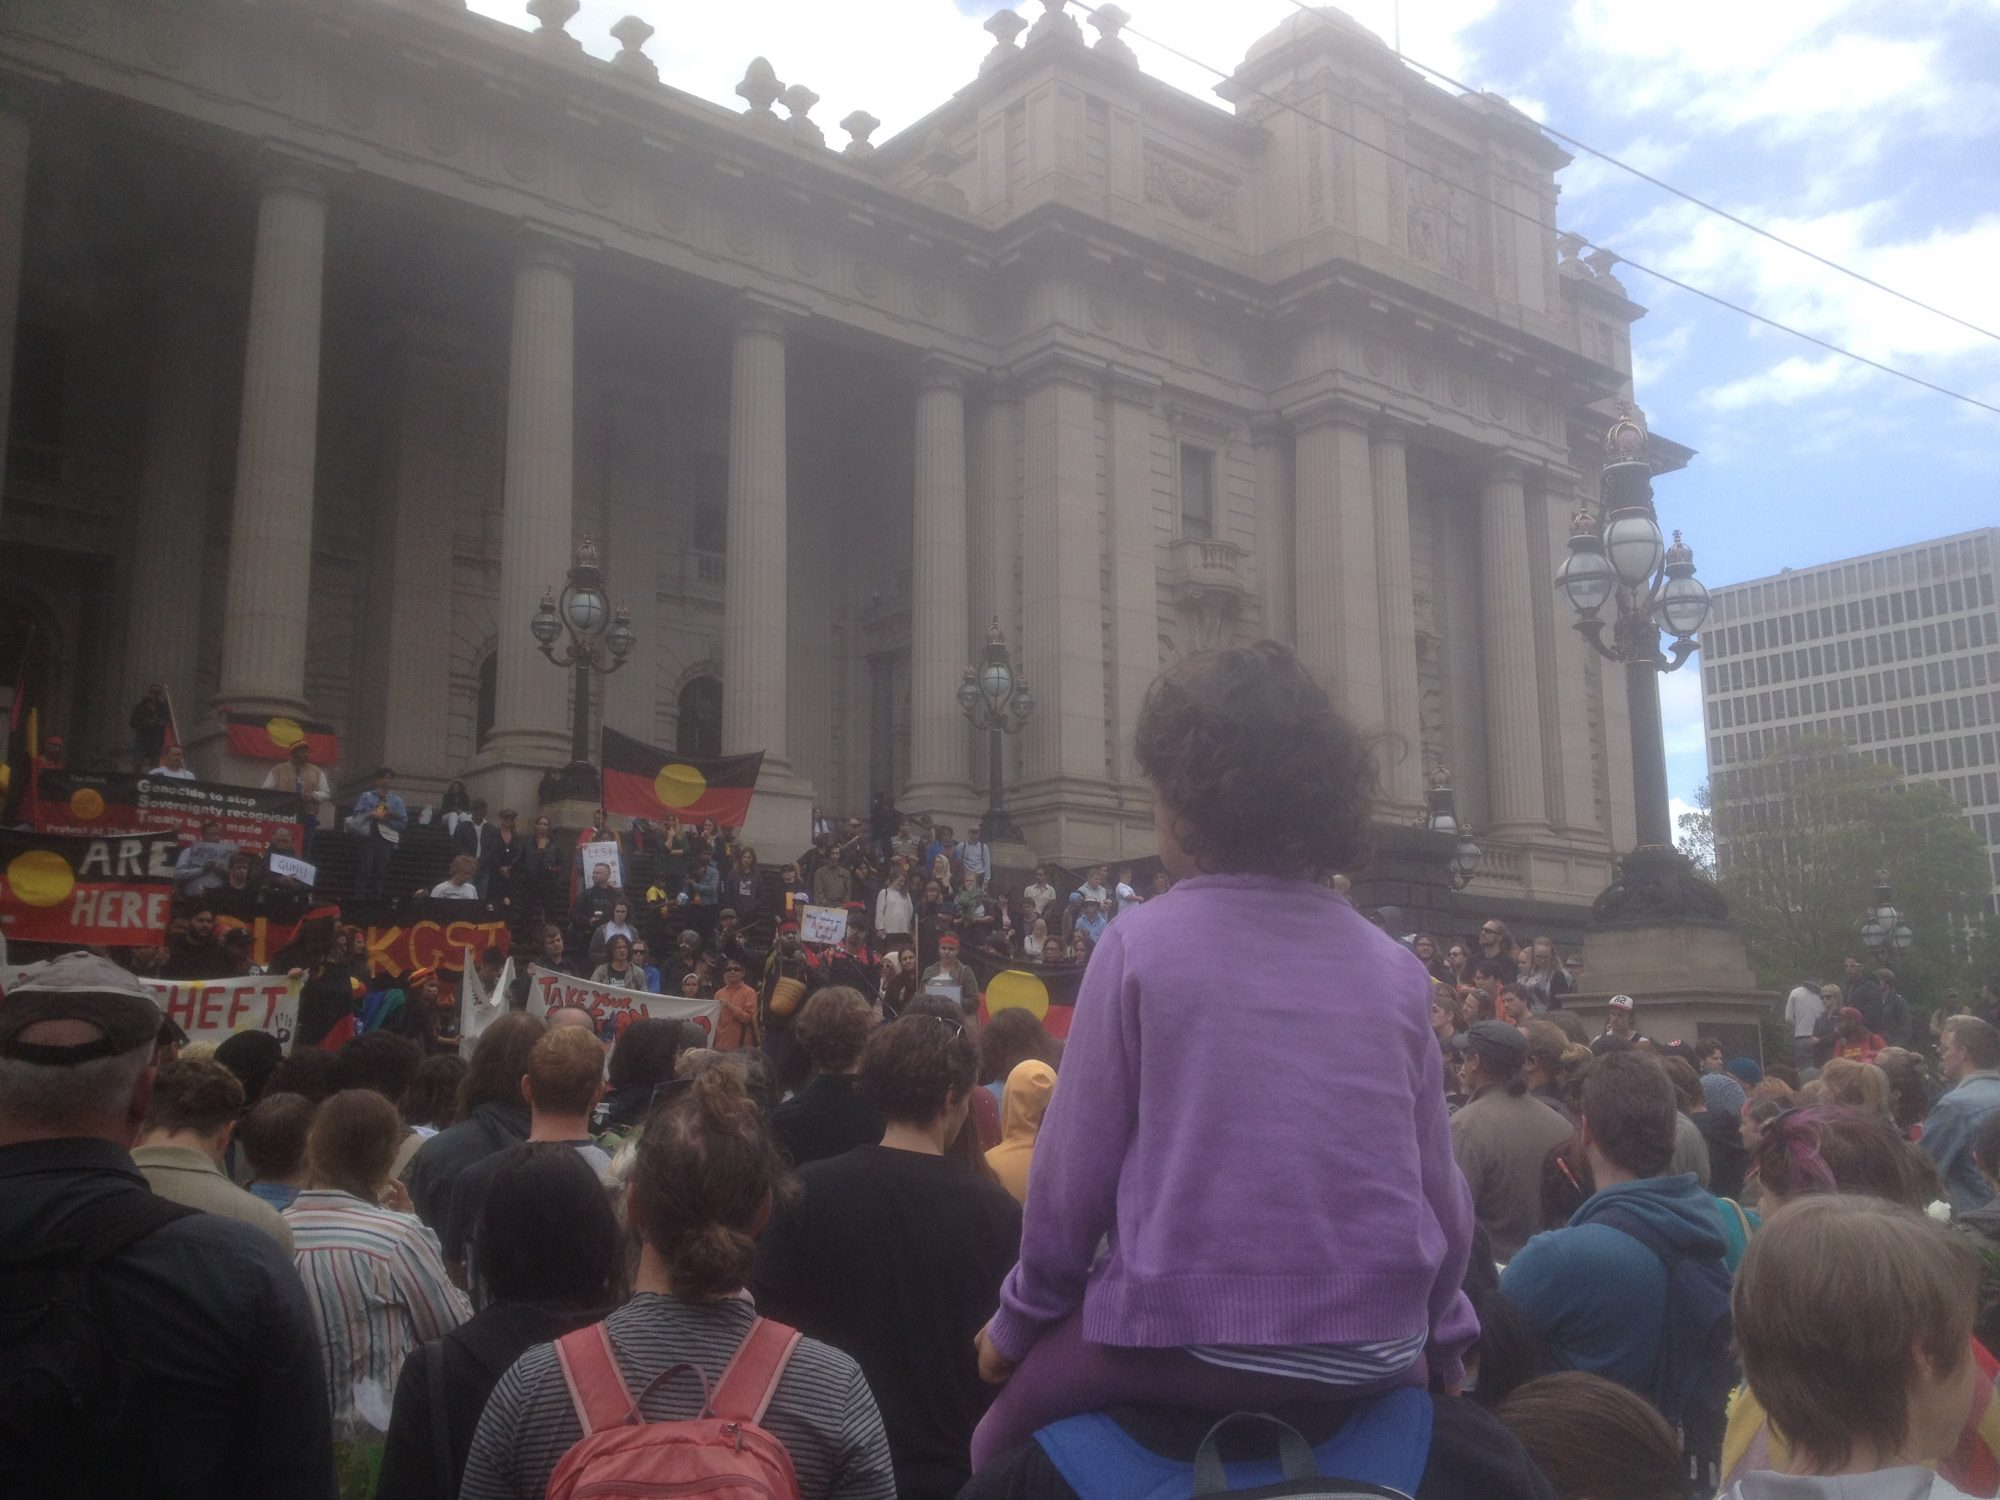 Melbourne Educators for Social and Environmental Justice